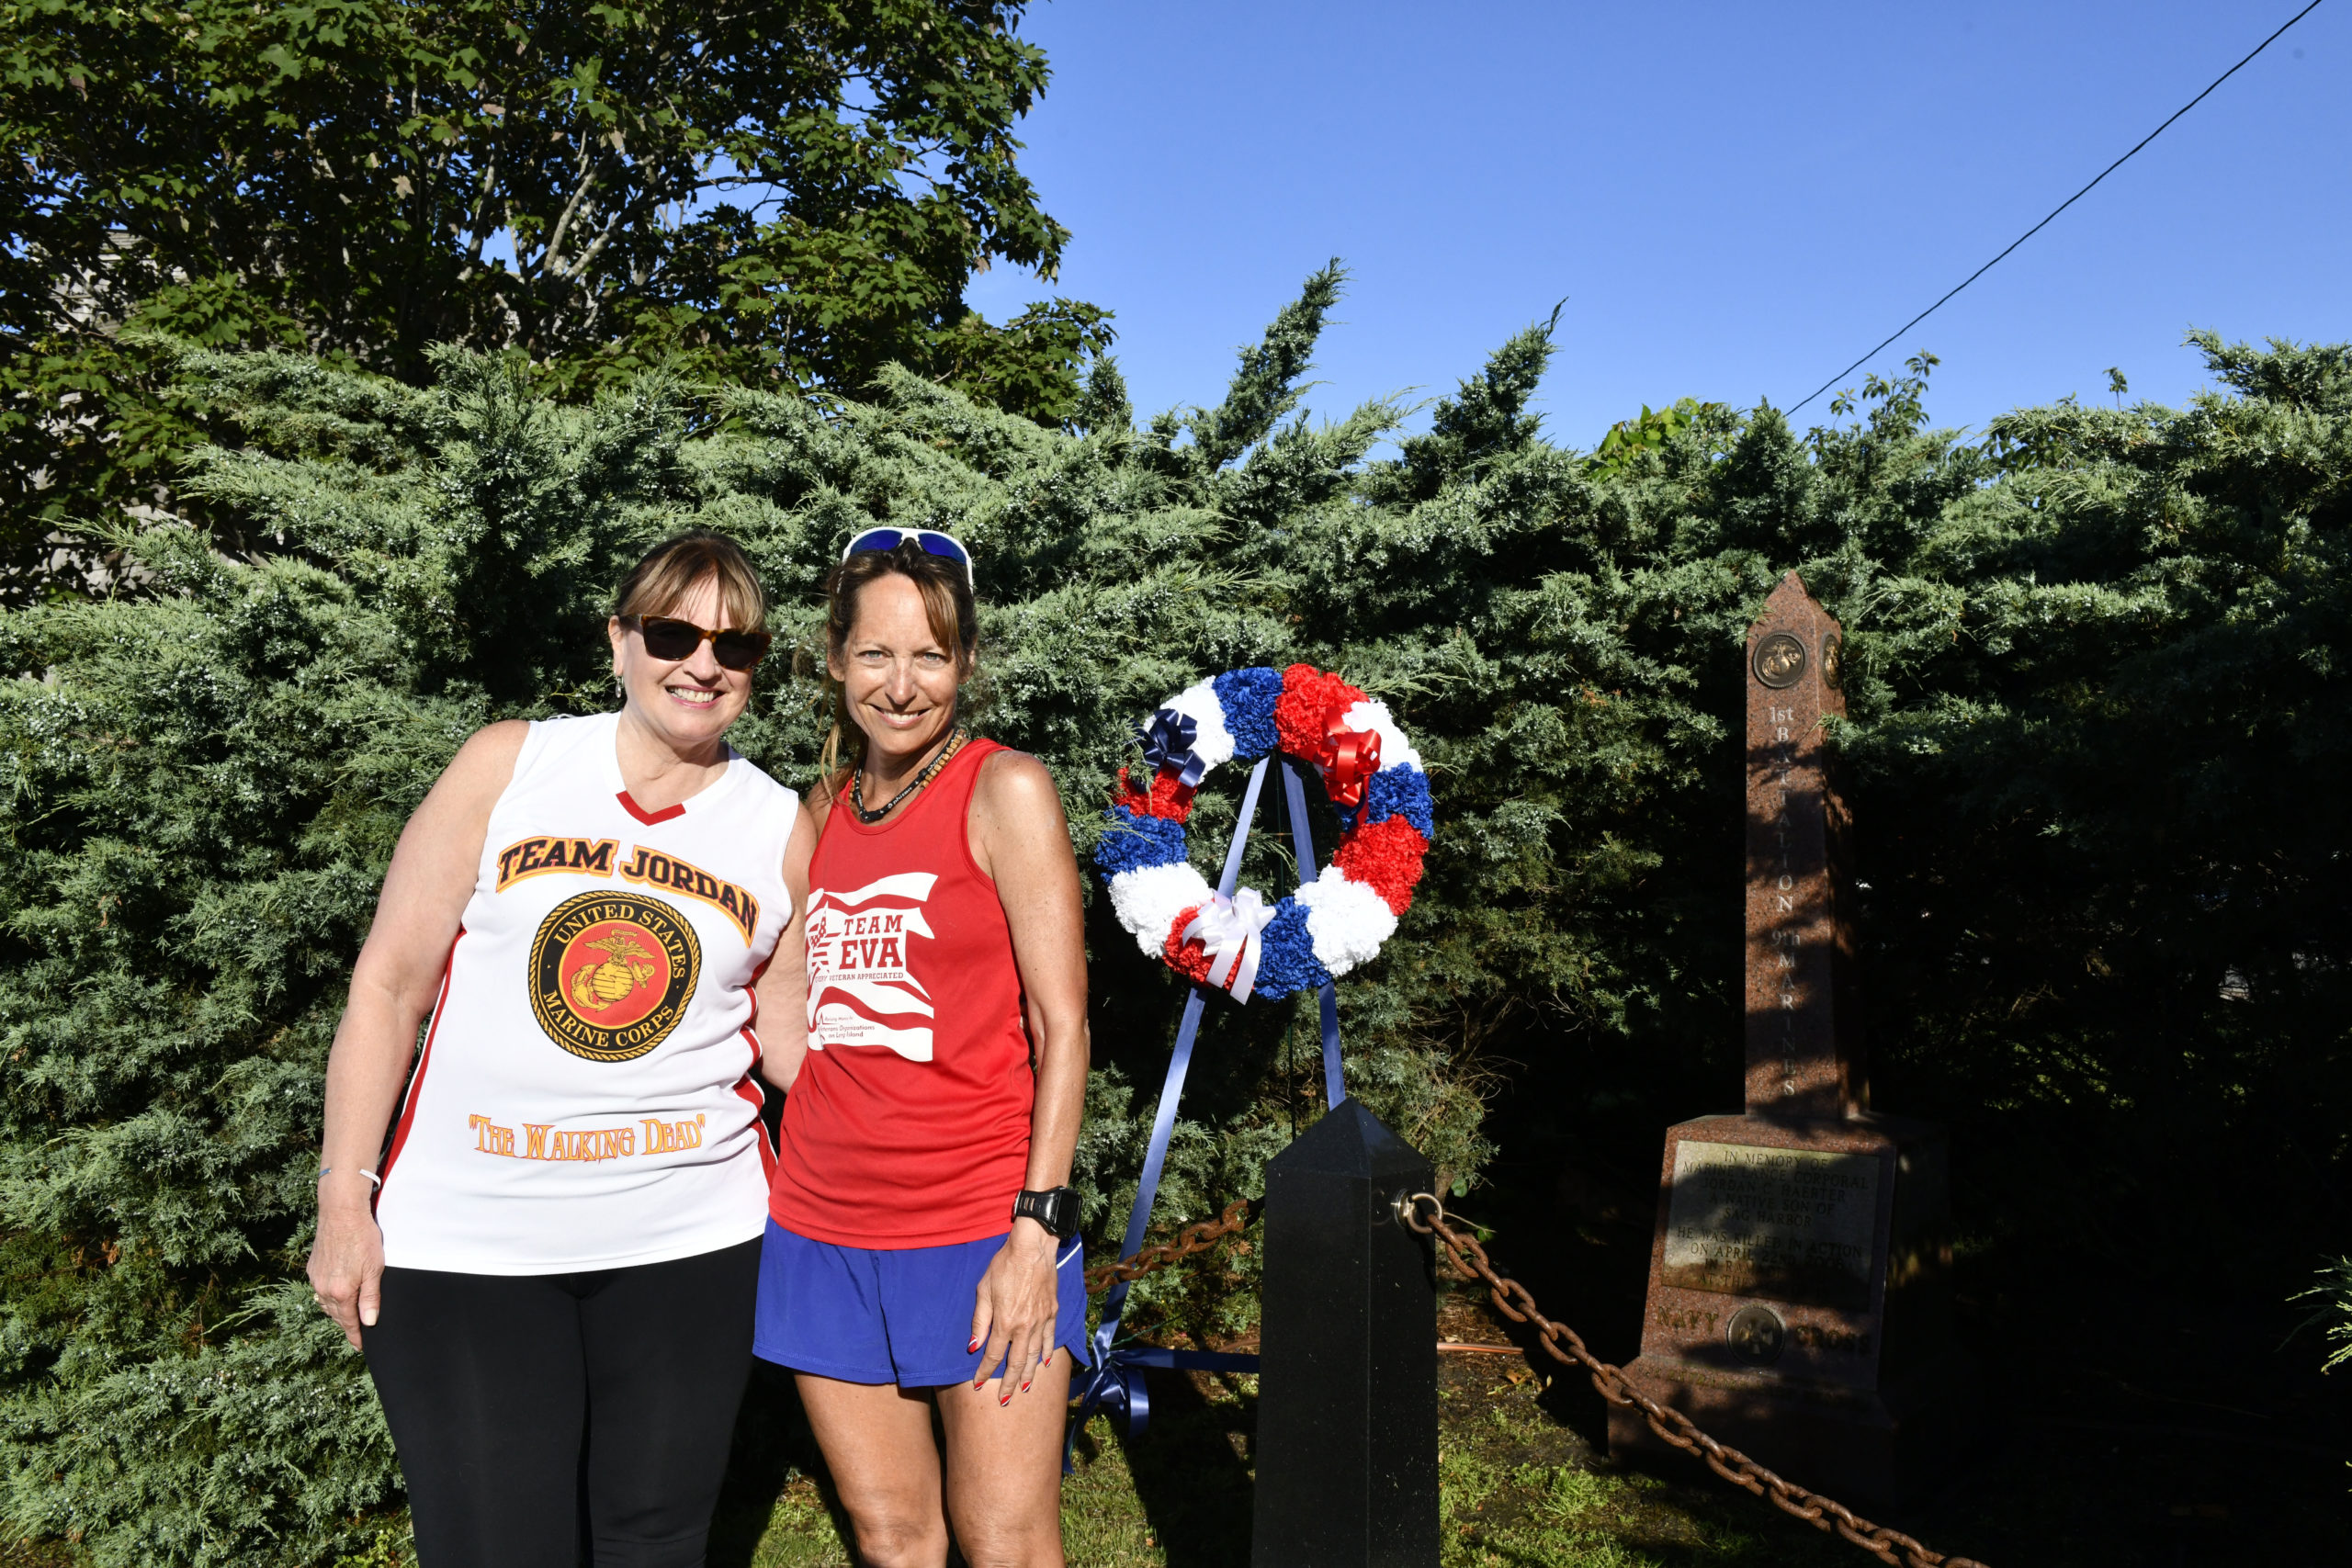 Ultra-Marathon Runner Eva Casale, right, with JoAnn Lyles, mother of fallen Marine Jordan Haerter, at the Jordan Haerter Memorial in Sag Harbor on Thursday. For past five years, Ms. Casale  has used her talent to run long distances and capitalizing on her physical and mental focus by pounding the pavement a minimum of 26.2 miles each day to raise funds to honor troops, local veterans and those who have fallen.  Ms. Casale ended her run at the Westhampton VFW Post 5350 on Saturday evening.             DANA SHAW